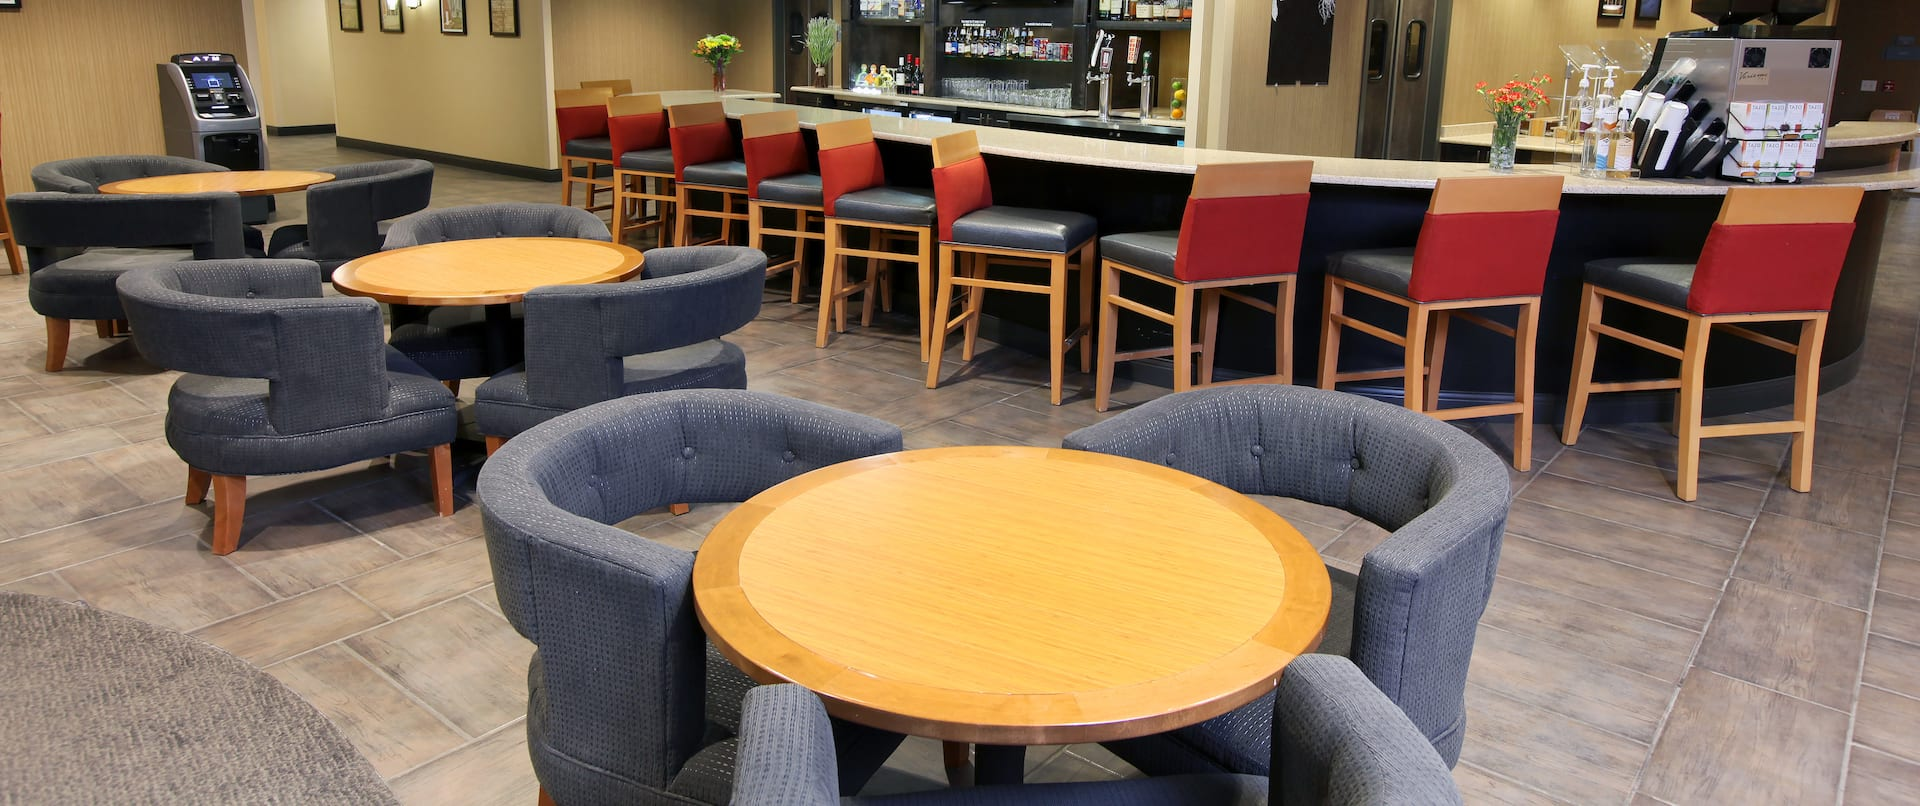 Round Tables With Blue Chairs and Red Chairs at Fully Stocked Bar of Lobby Restaurant and Lounge